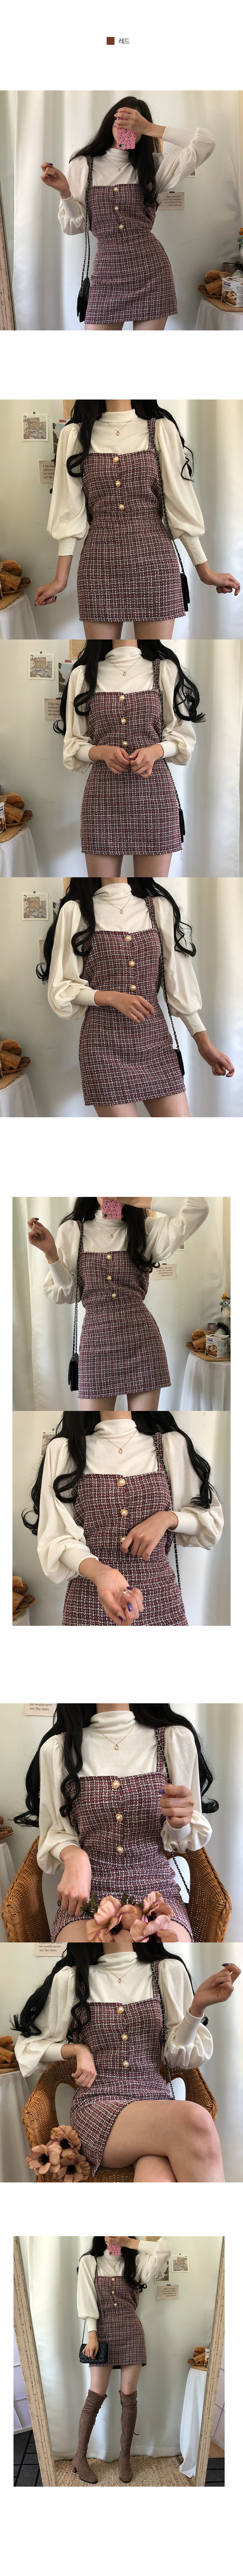 Nel Tweed Bustier + Skirt Two Piece Set